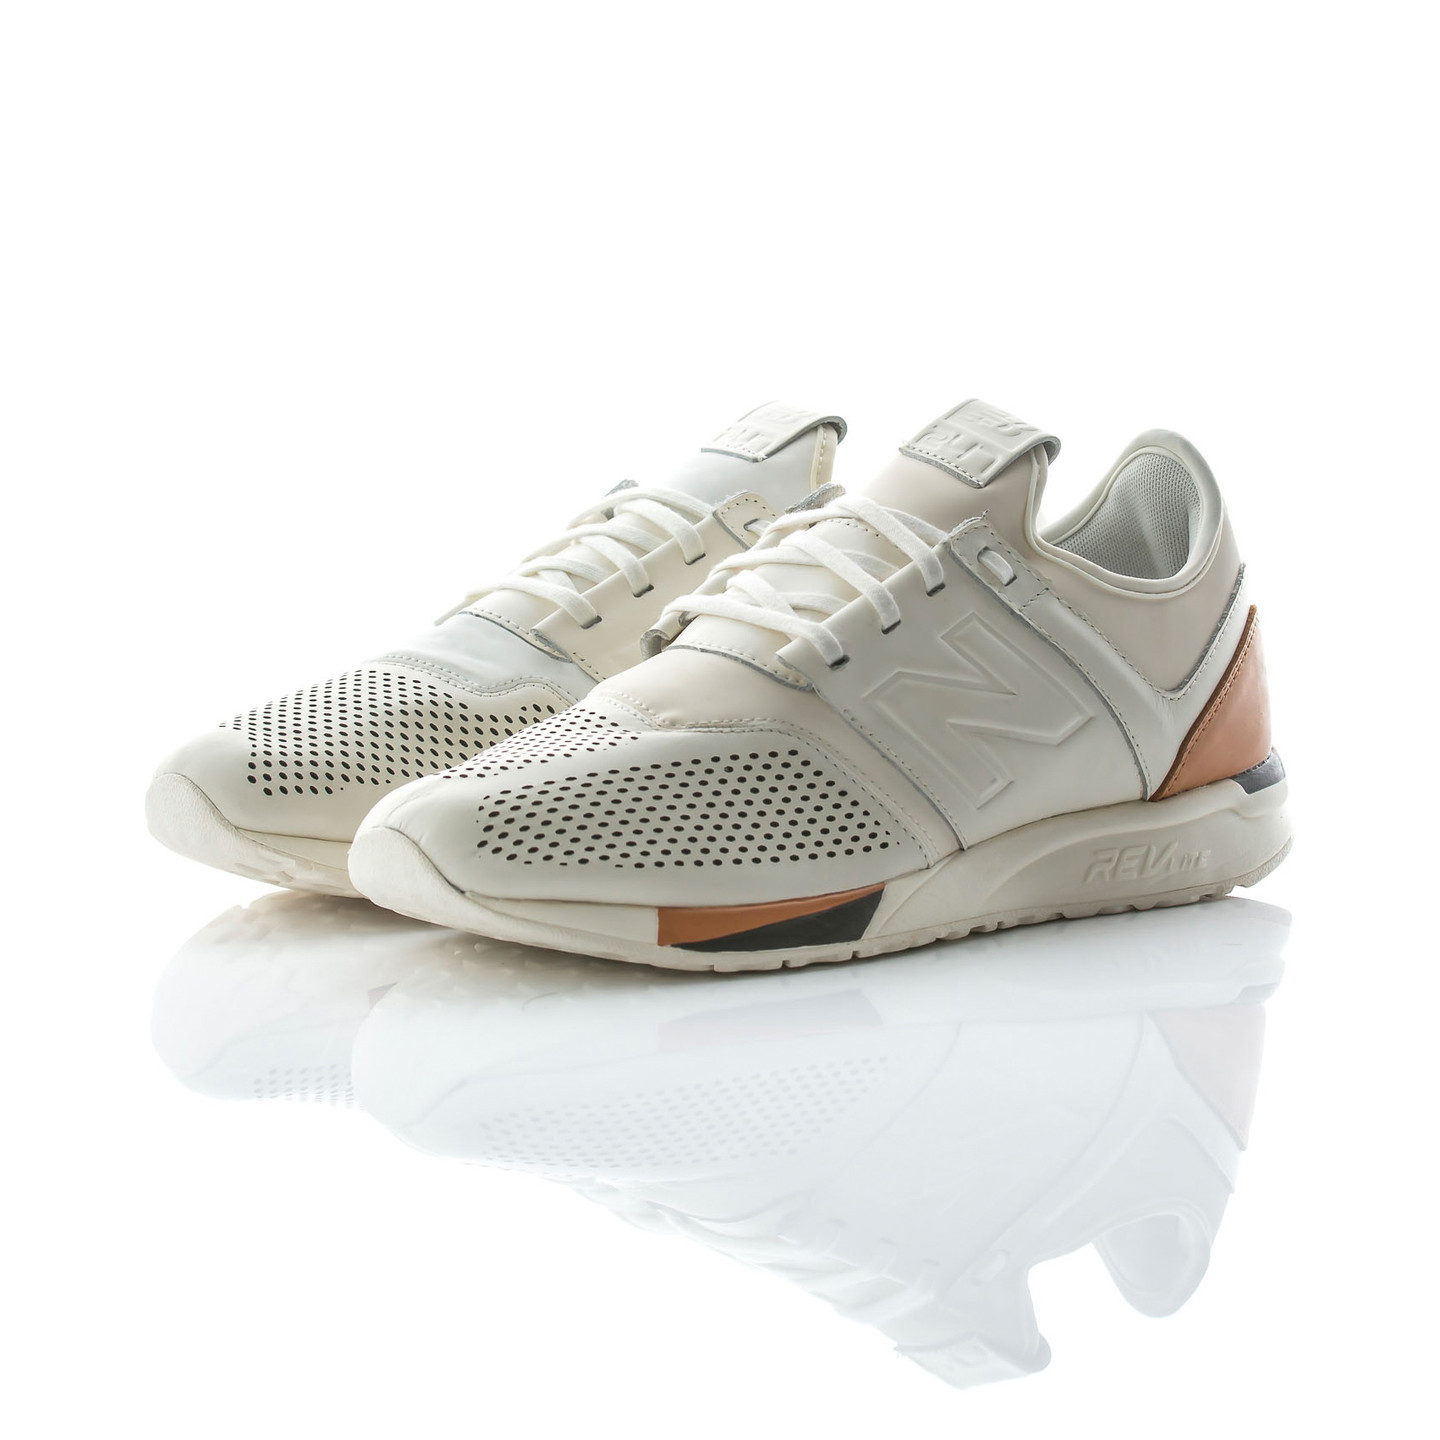 New Balance MRL 247 'Luxe Pack' Off White / Brown MRL247BE-43